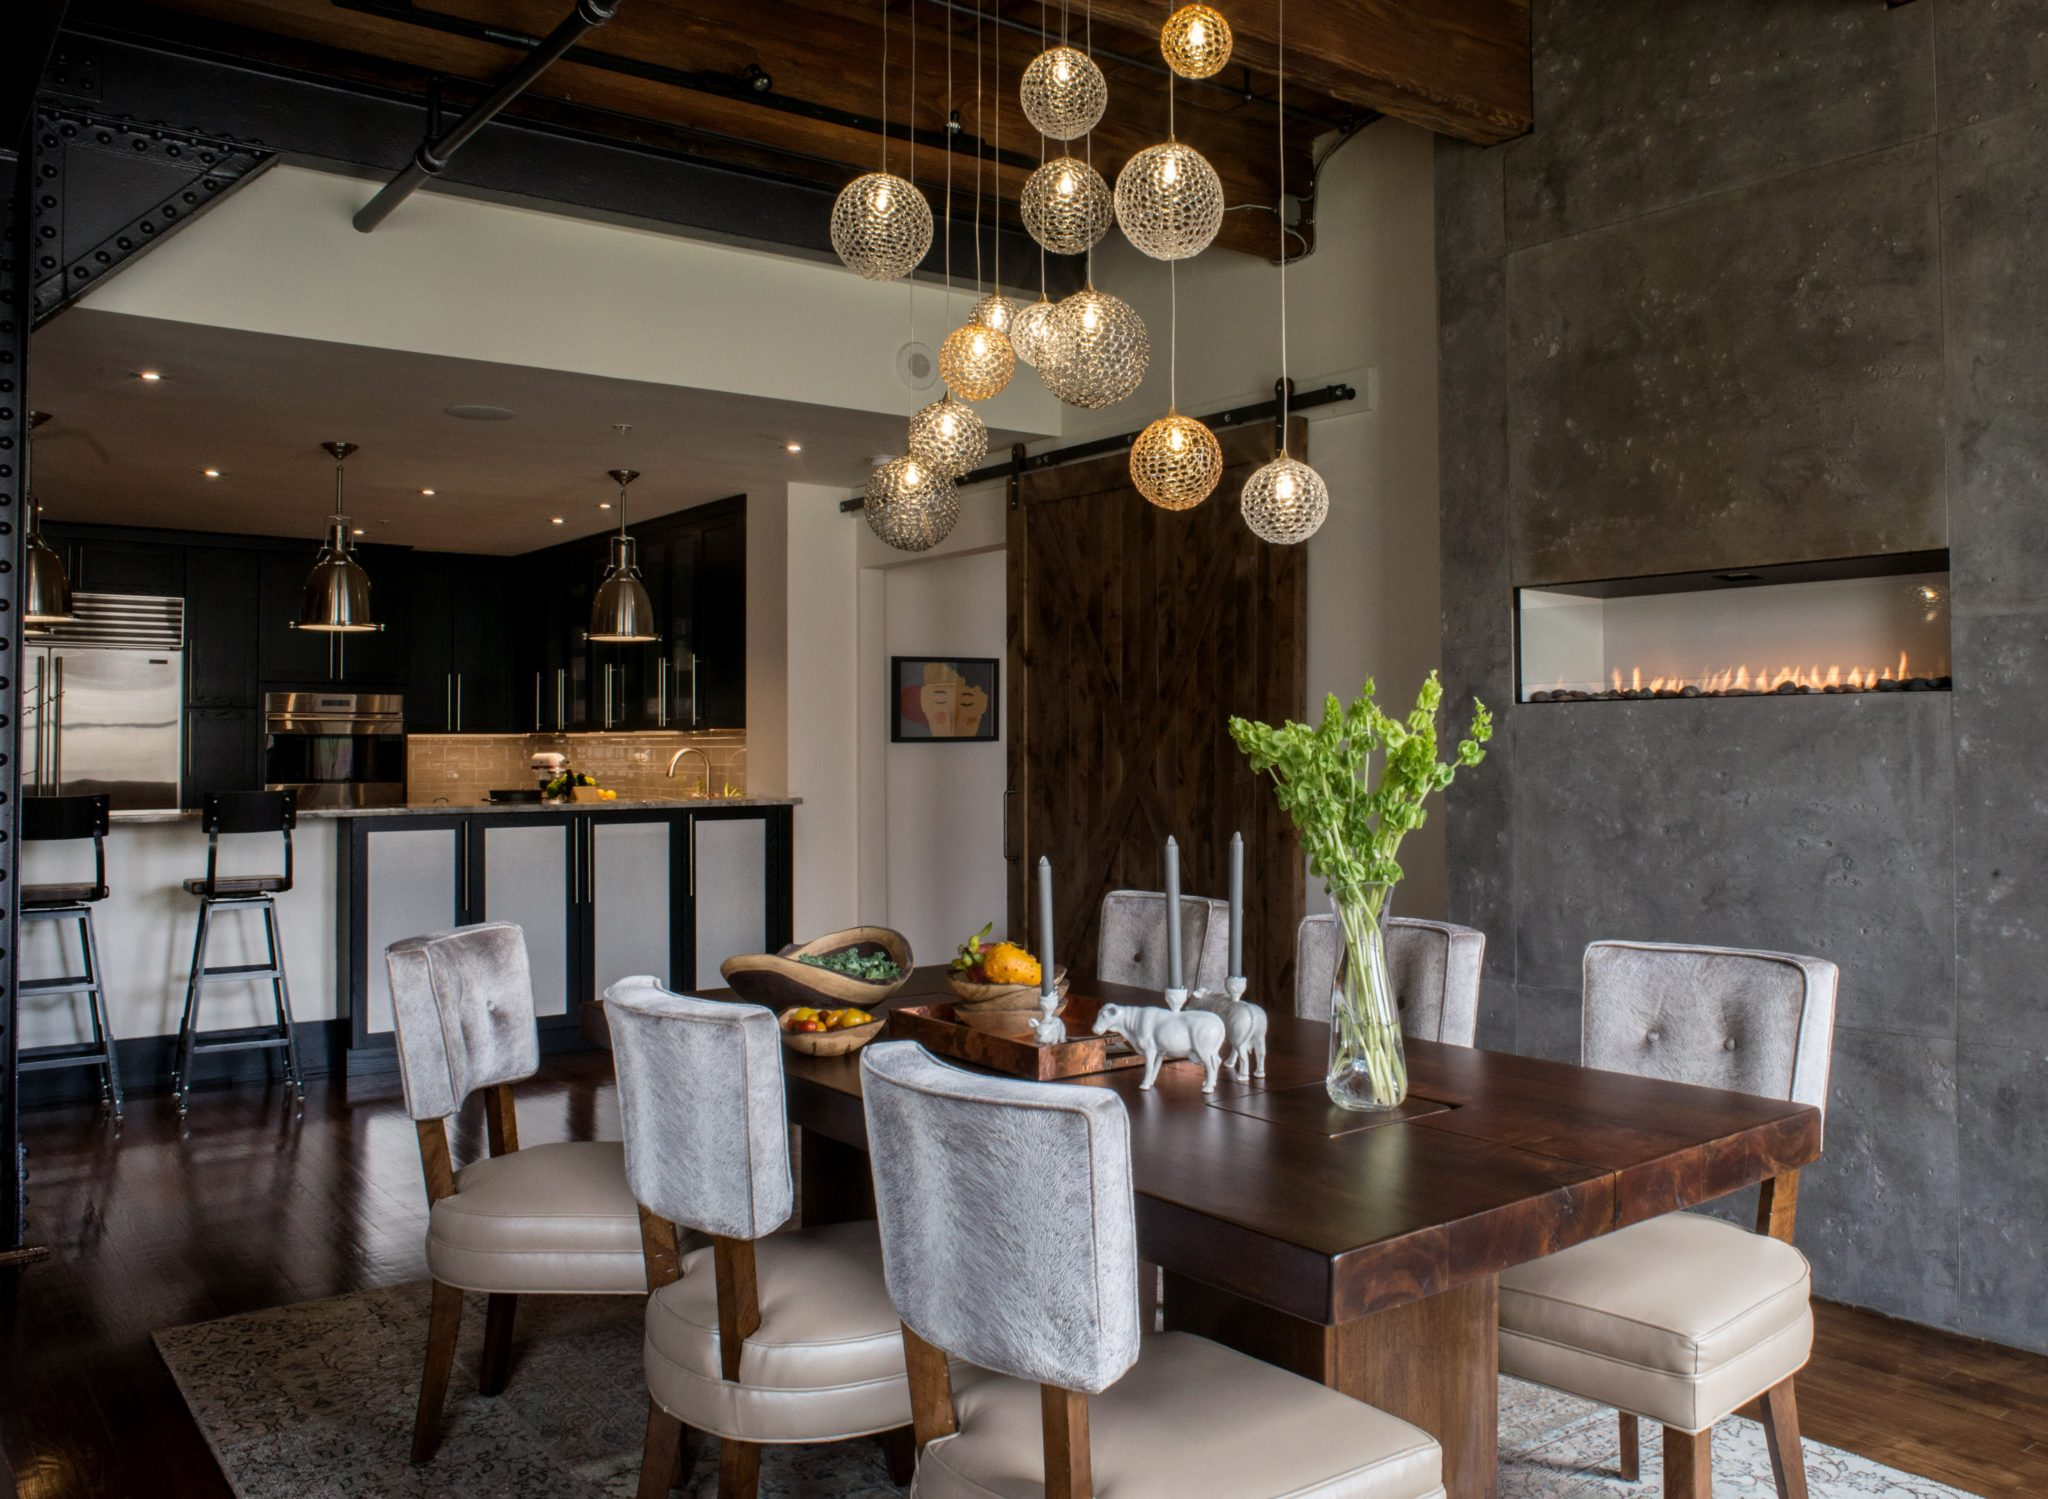 """Find the Right Lighting   When it comes to lighting an industrial space, think big and bold. """"Little fixtures get lost in big, high-ceiling spaces, especially pendant fixtures which need to be bigger and bolder than what you would use in a residential space,"""" says Lagrange. """"The same principles apply to floor and table lamps; they may need to be larger, more graphically bold and powerful than what would work in residential spaces.""""  In the above image, designer Michele Plachter uses a hand-blown glass chandelier to create a focal point over the dining room table. """"I am a huge believer that lighting is the jewelry in any space. The hand-blown glass globes we sourced are perforated so when the light is on, it reflects light patterns that sparkles at night and reflects off of the walls,"""" she says.  To create additional warmth, Bishop advises designers to use fixtures and bulbs with dimmers. """"One of the biggest design elements that can be used to add warmth to a space is often the most overlooked one: lighting. Lighting types and how they affect the overall feel of a space is important. Use warm decorative lighting on dimmers and avoid cool LEDs or only recessed downlights,"""" she says."""